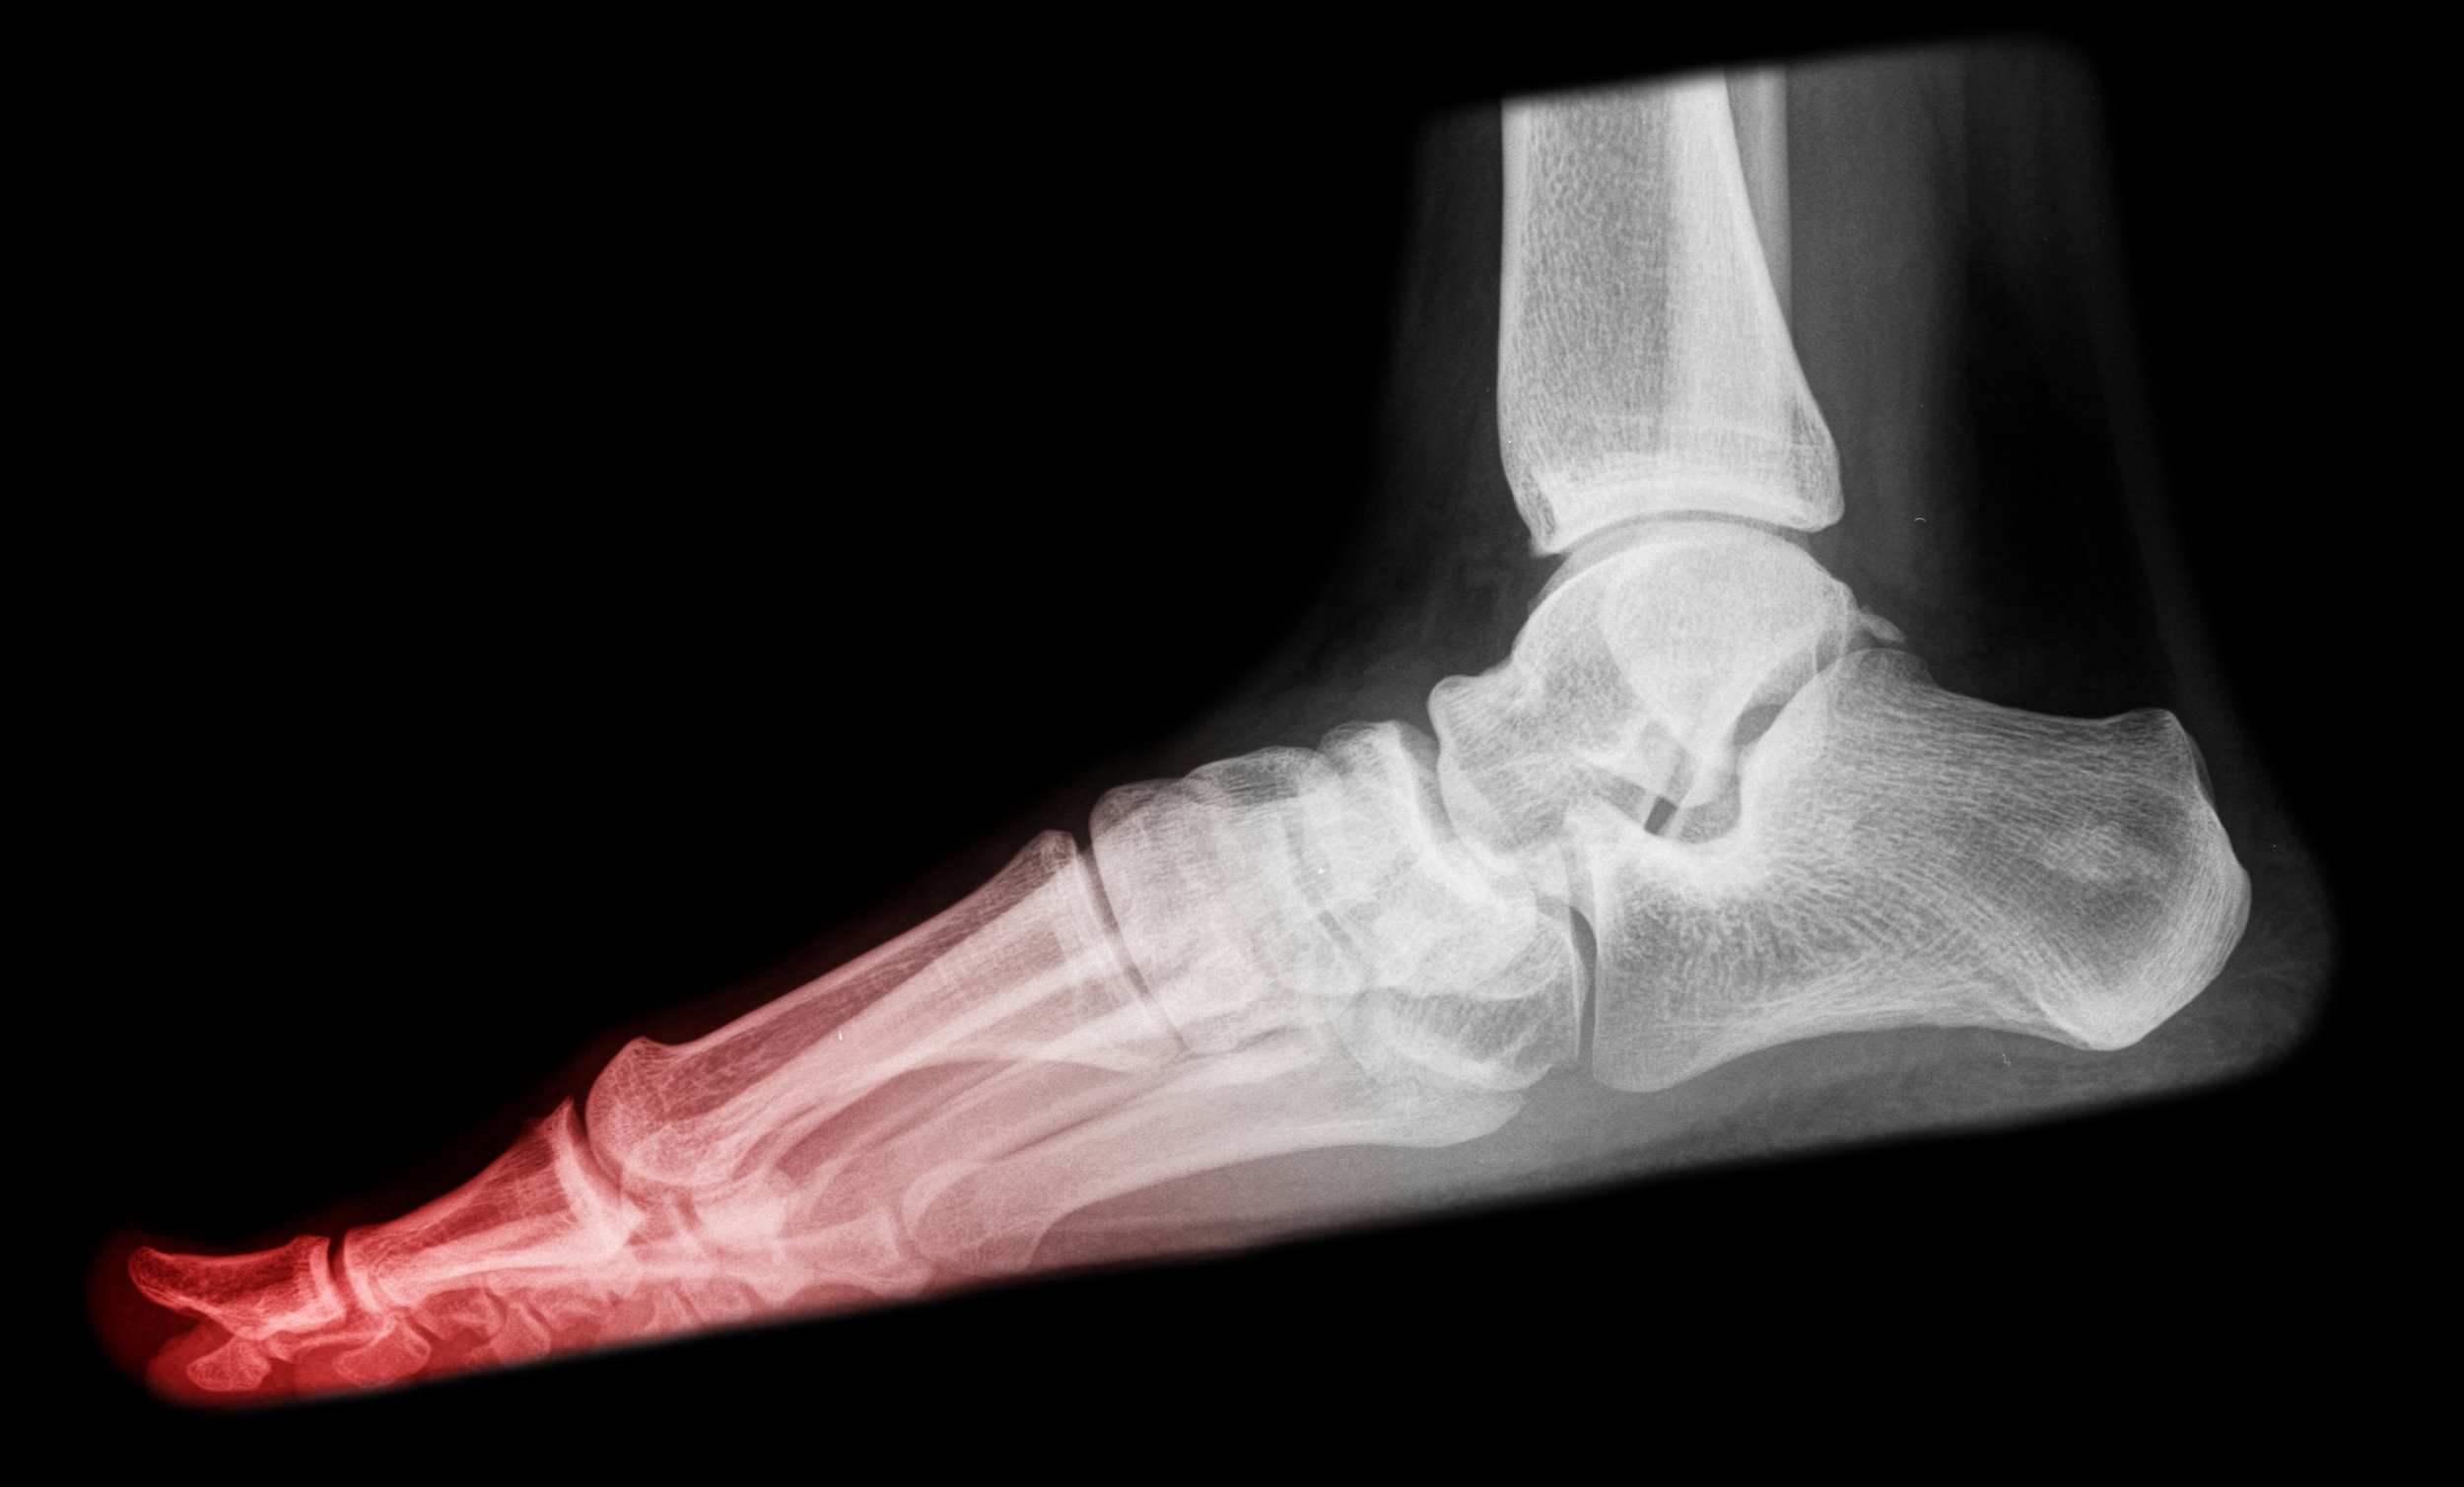 fairfax, va foot doctor treats foot fractures, broken toes, broken ankles